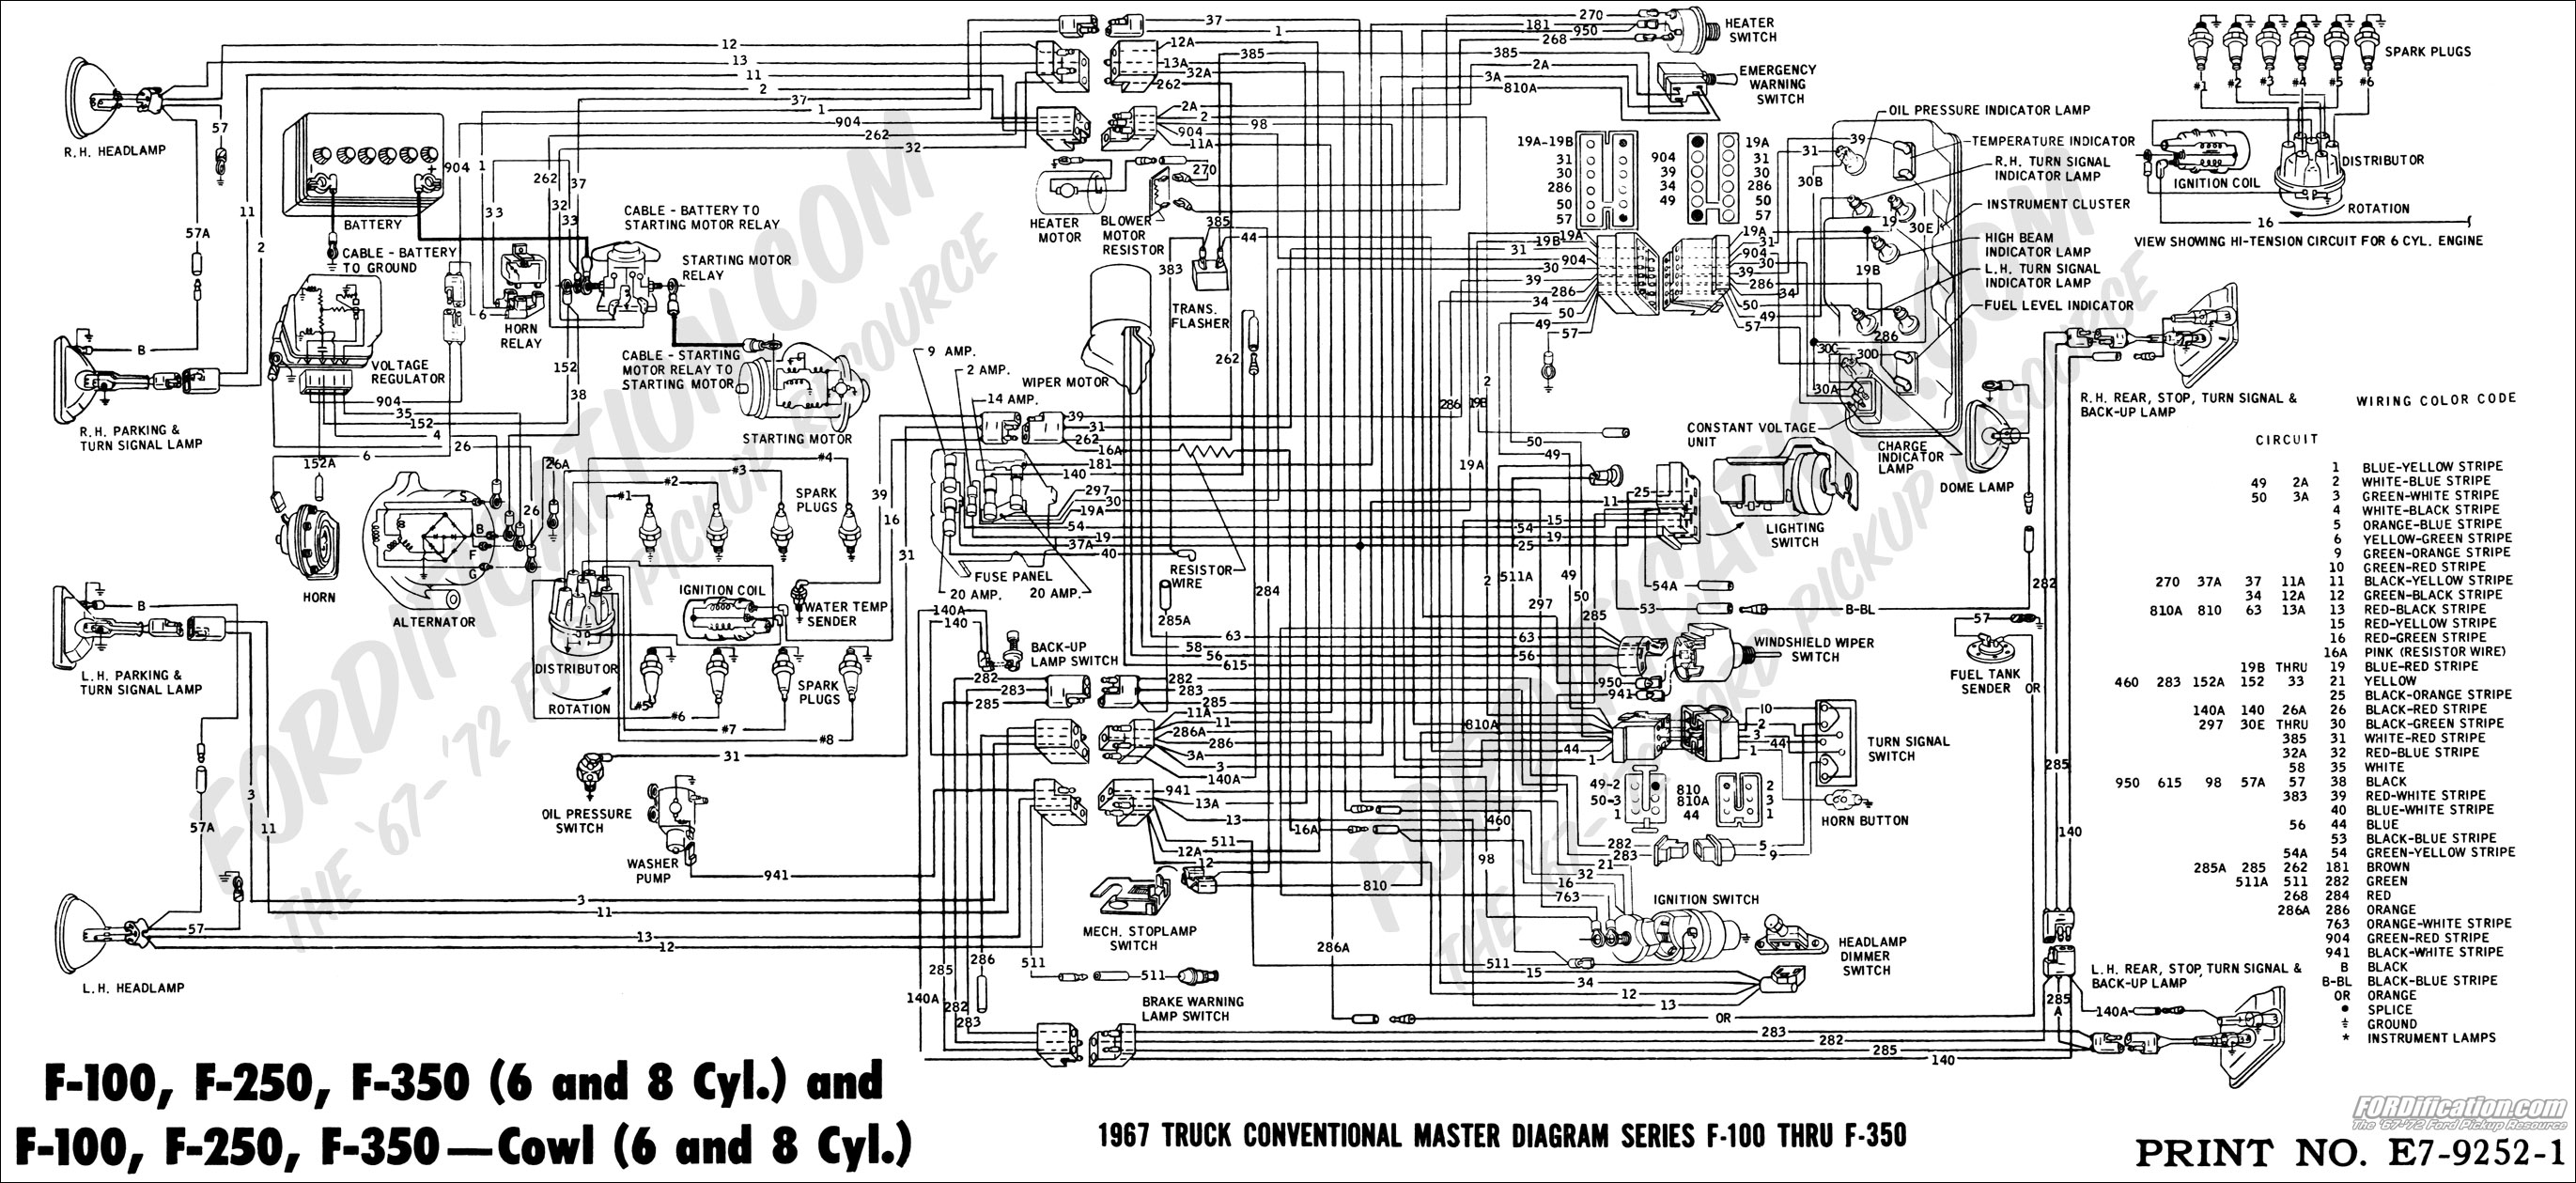 67masterdiagram 99 f150 wiring diagram 99 f150 stereo wiring diagram \u2022 wiring 1999 ford ranger xlt wiring diagrams at webbmarketing.co